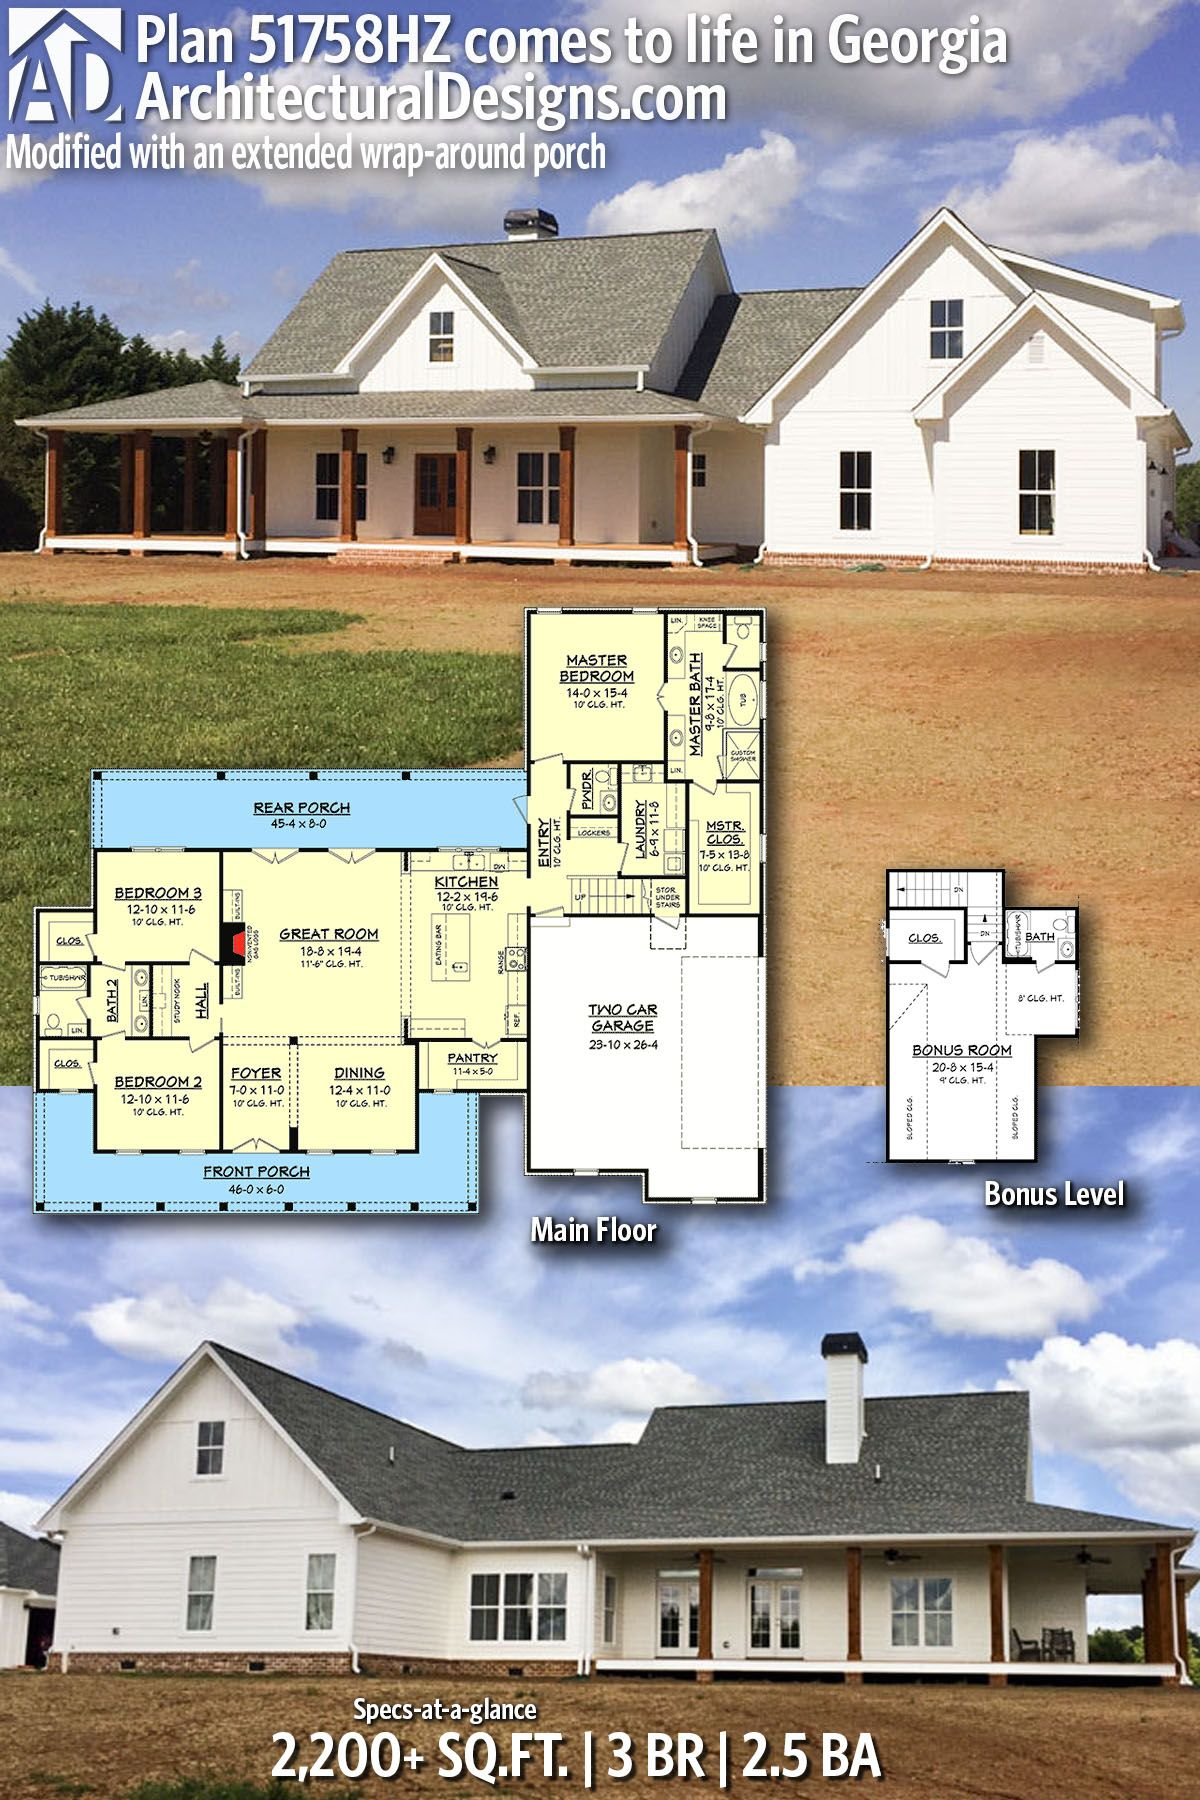 Our client built architectural designs modern farmhouse plan hz with  modified wrap around porch also rh ar pinterest